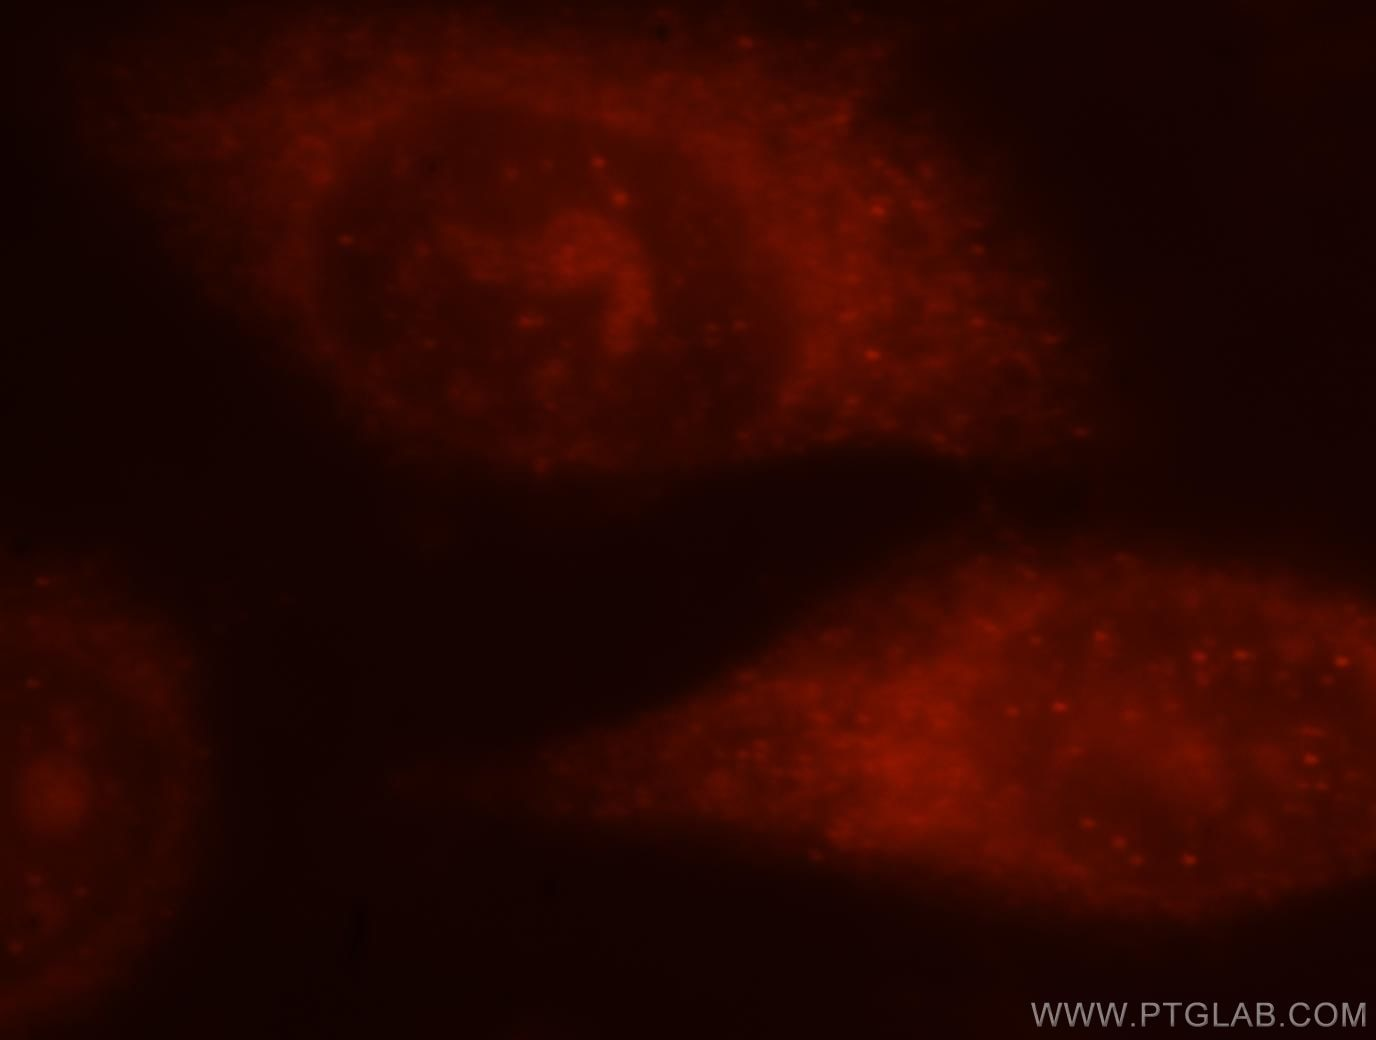 ALOX5 Immunofluorescence IF 10021-1-Ig ALOX5 Antibody 5-LO; 5-LOX; 5LPG; LOG5; MGC163204